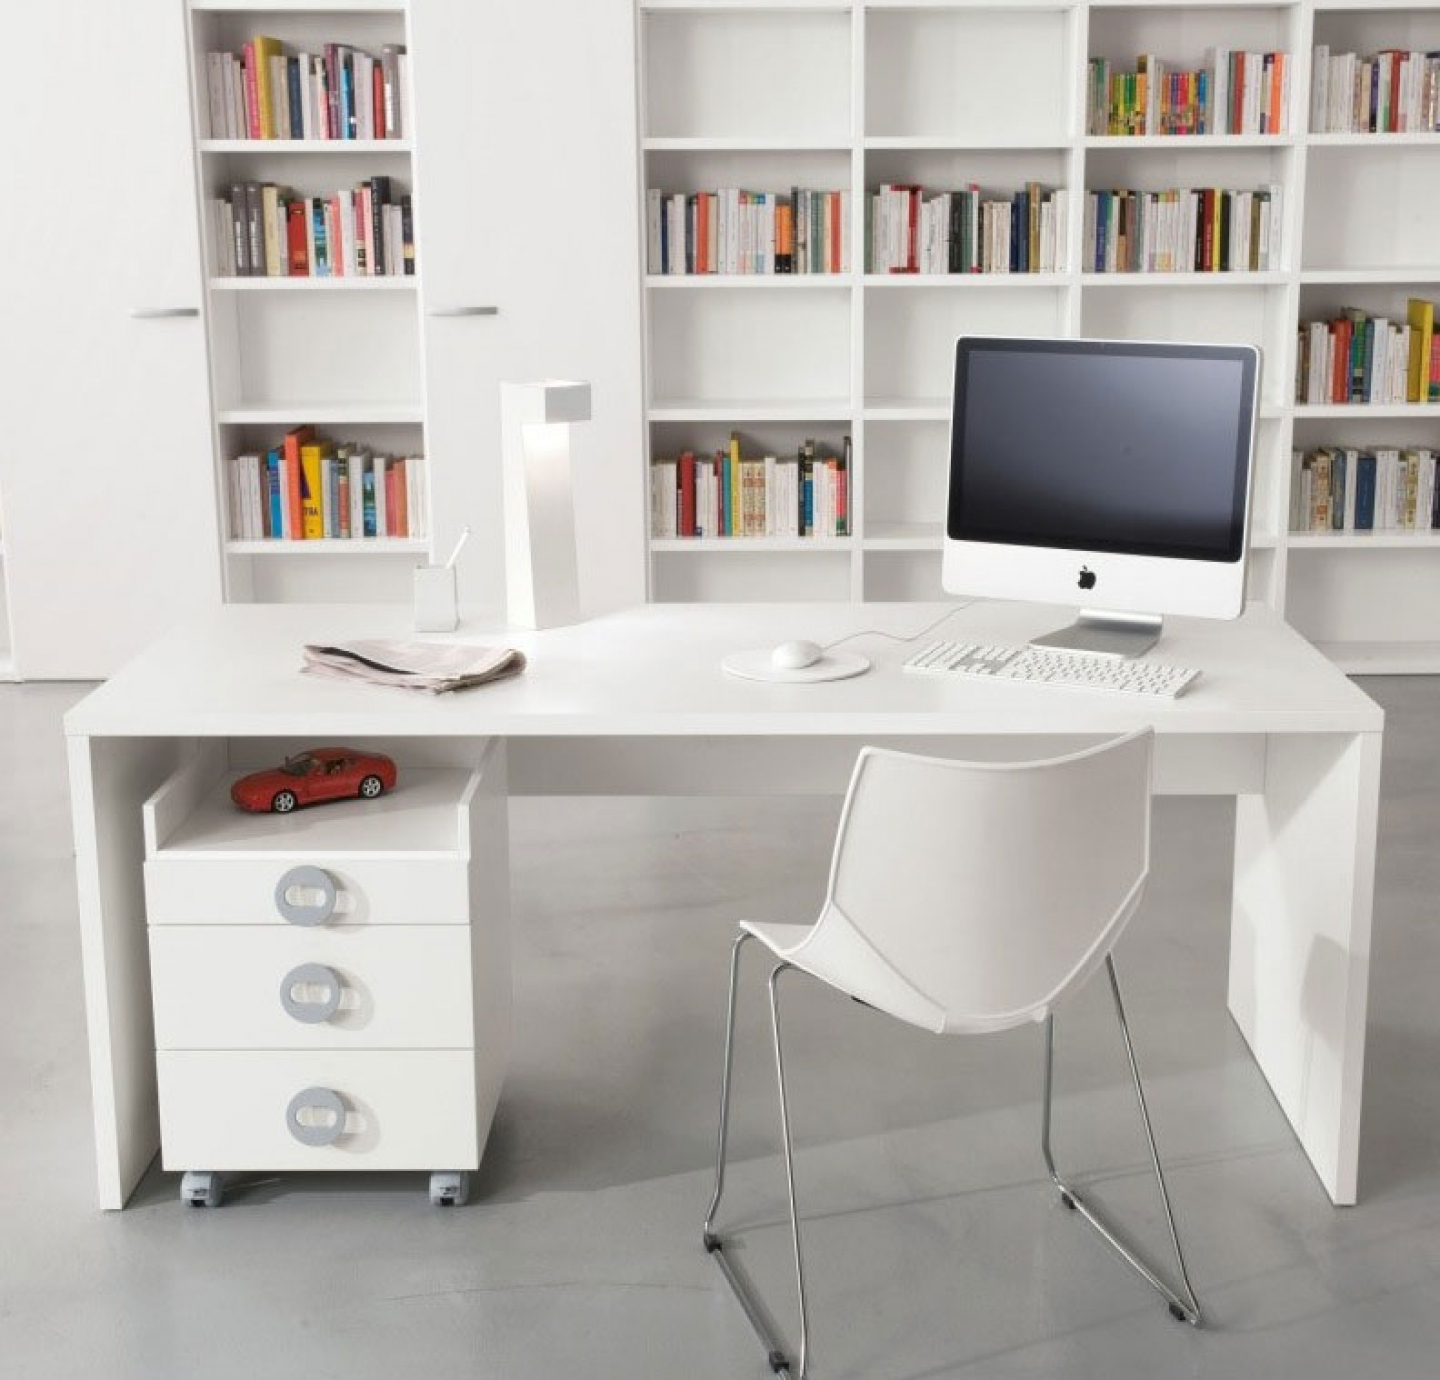 2018 Funiture: Modern Computer Desks Ideas With Freestanding White Intended For Modern Computer Desks (View 7 of 20)